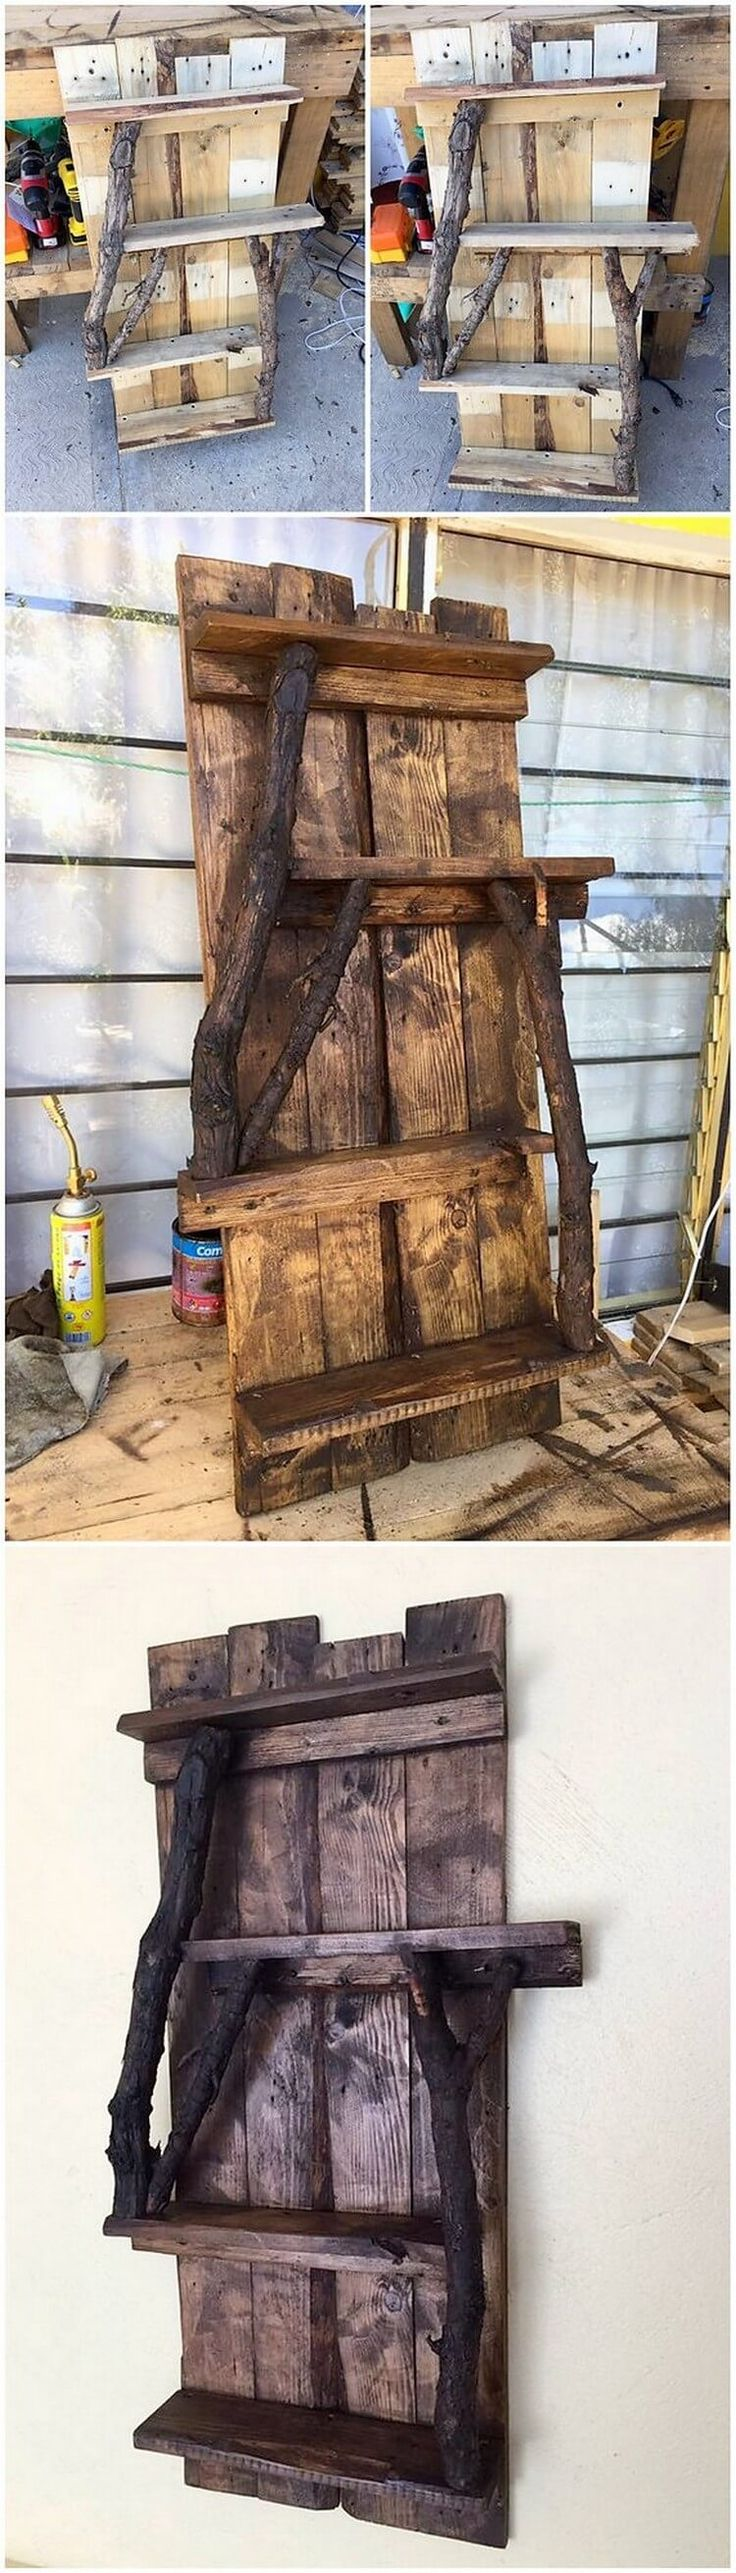 Wooden transport pallets have become increasingly popular for diy - 5973 Best Repurposed Images On Pinterest Pallet Ideas Pallet Projects And Pallet Furniture